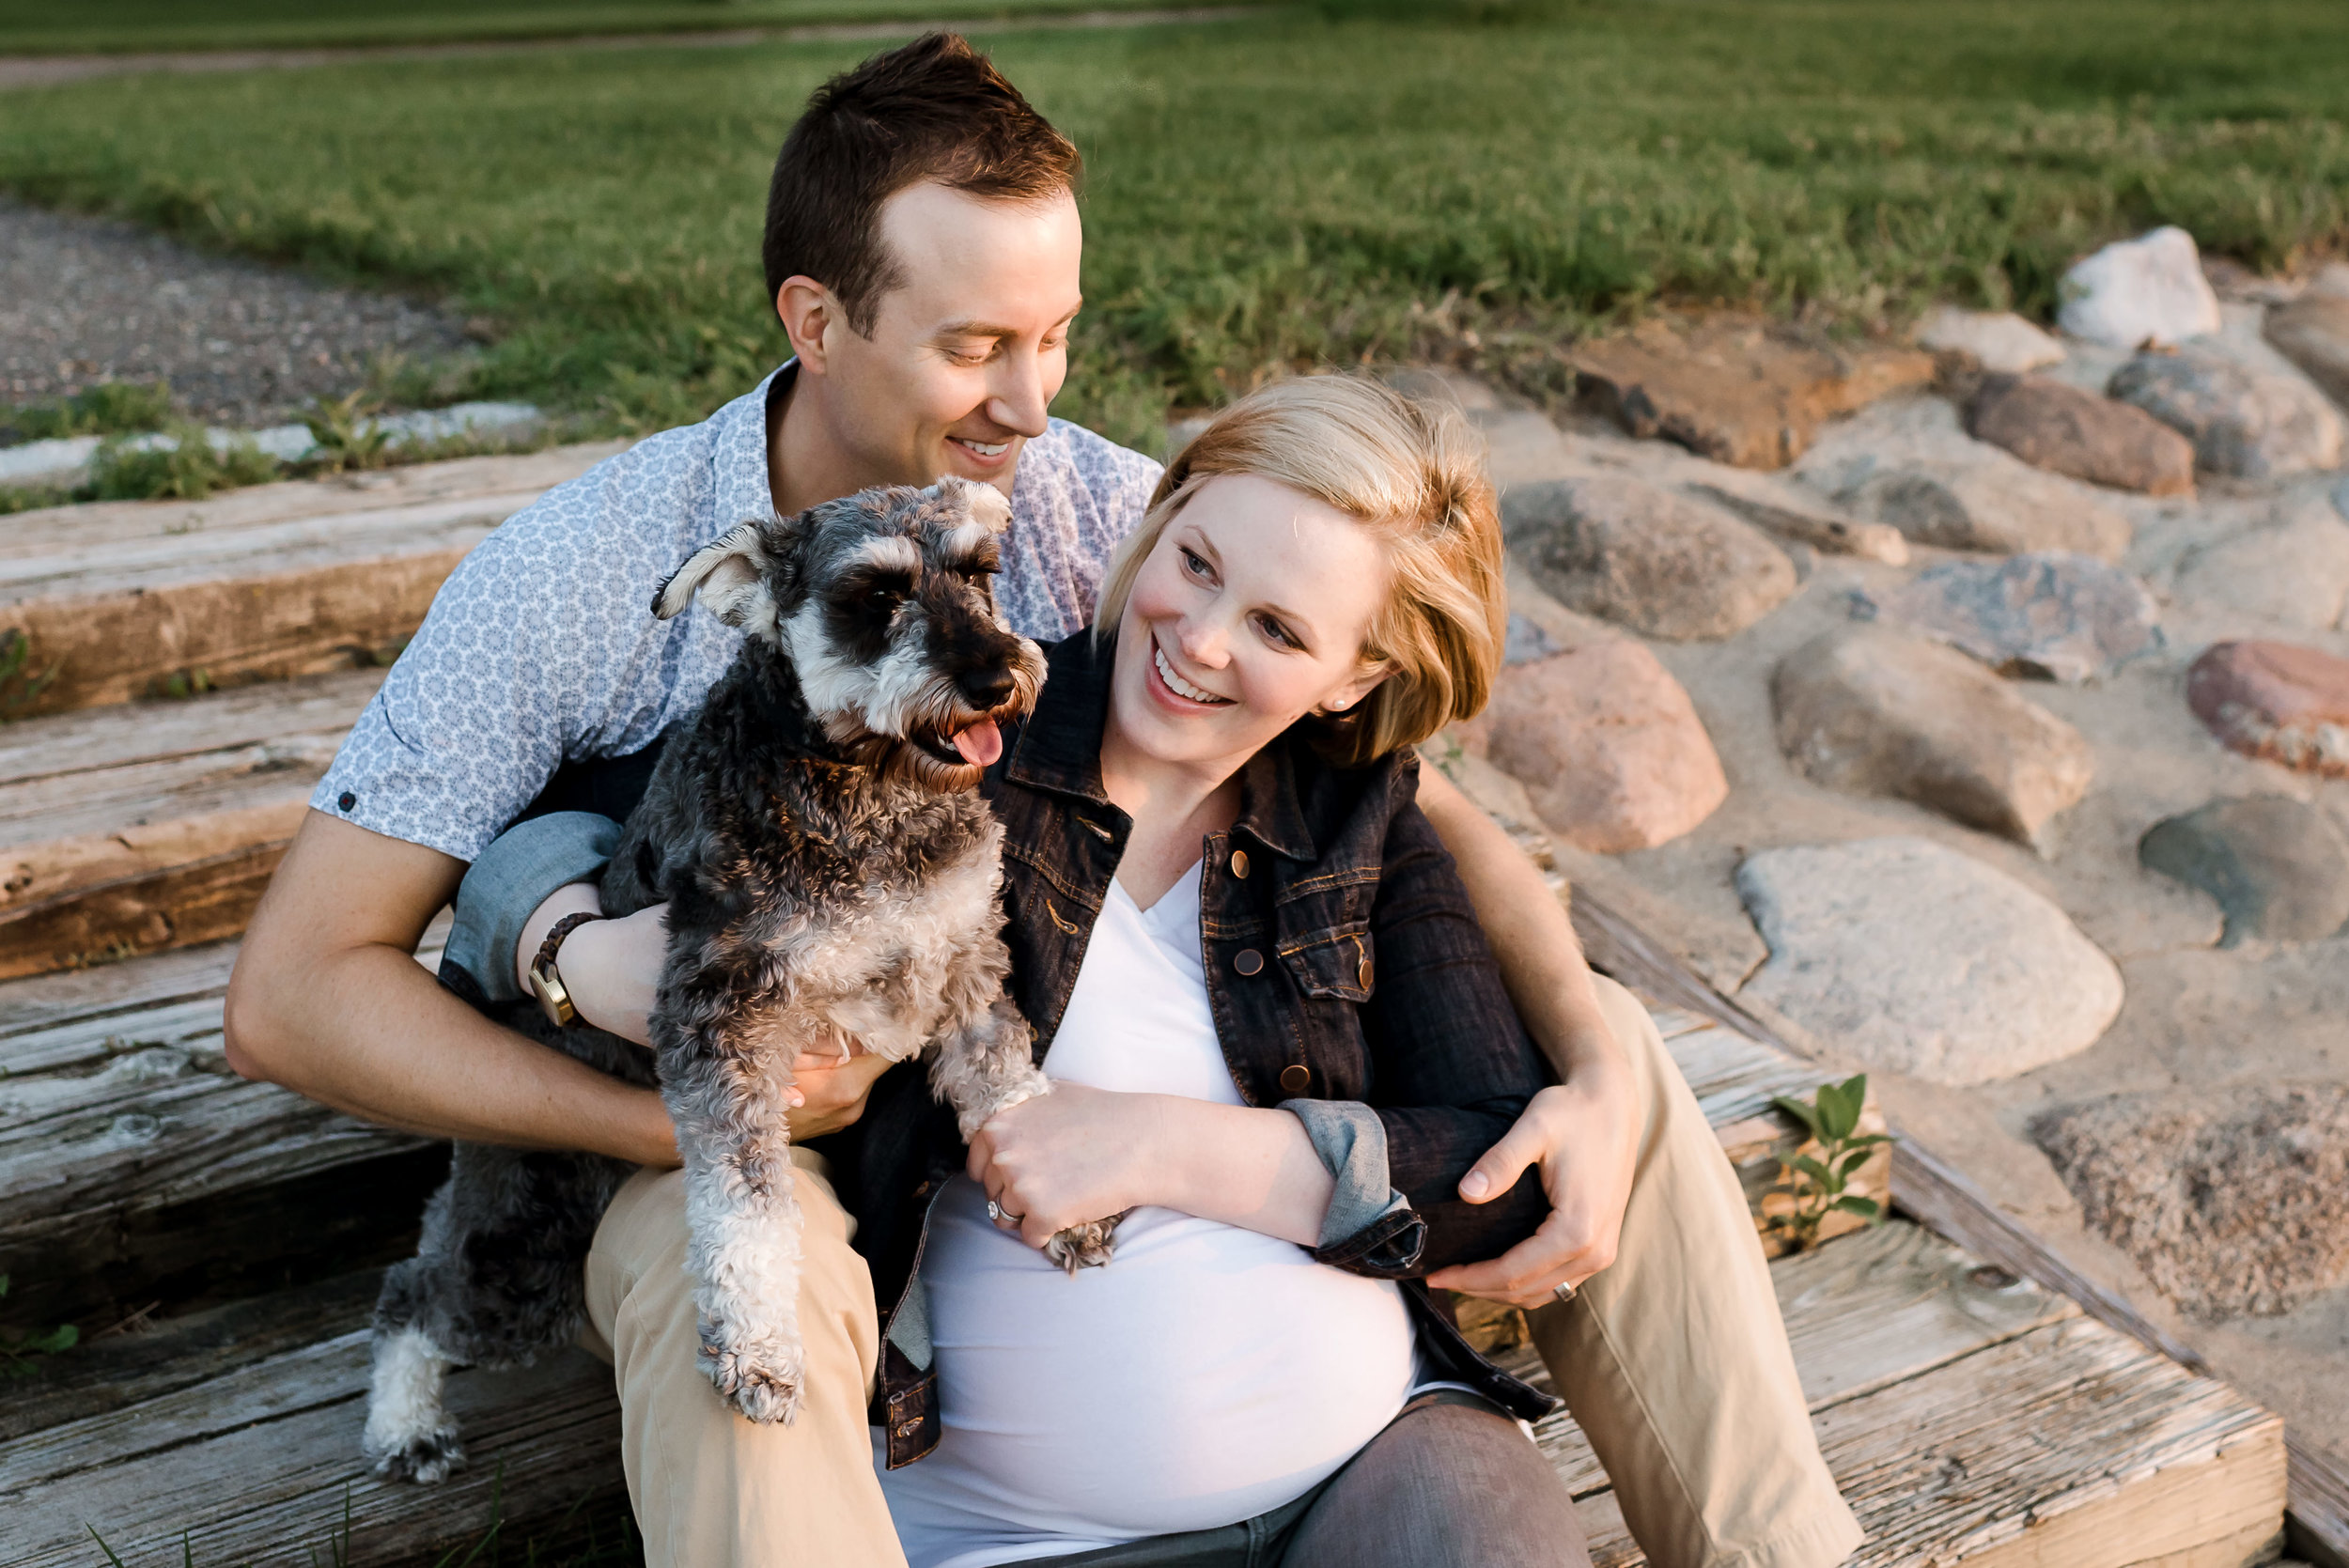 MN Maternity Session on beach with a dog - Laura Robinson Photography